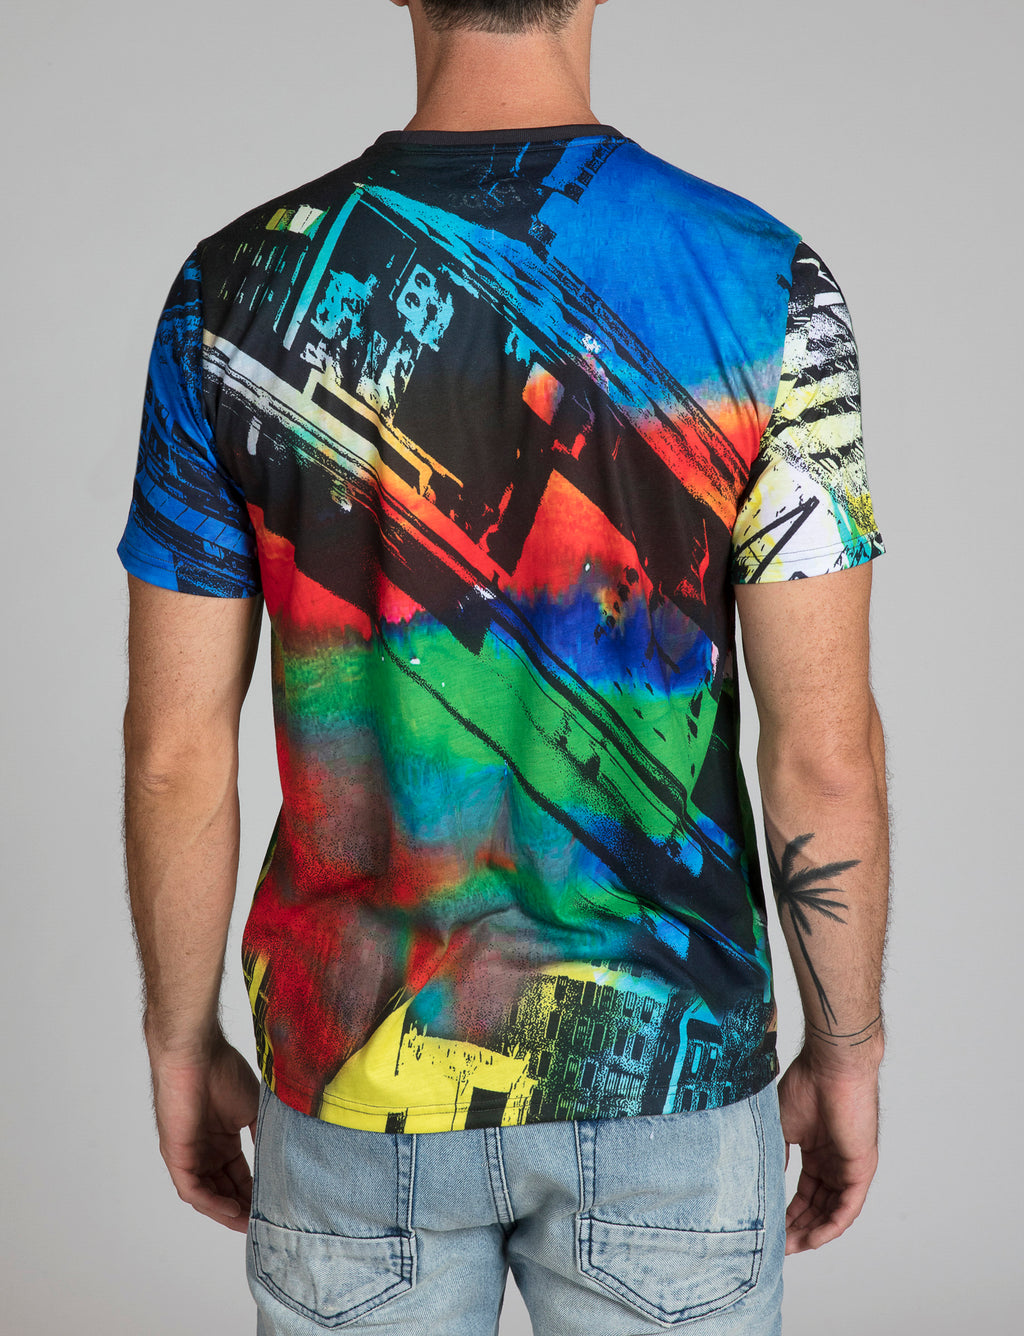 Prps - City Scapes Tee - Tee - Prps